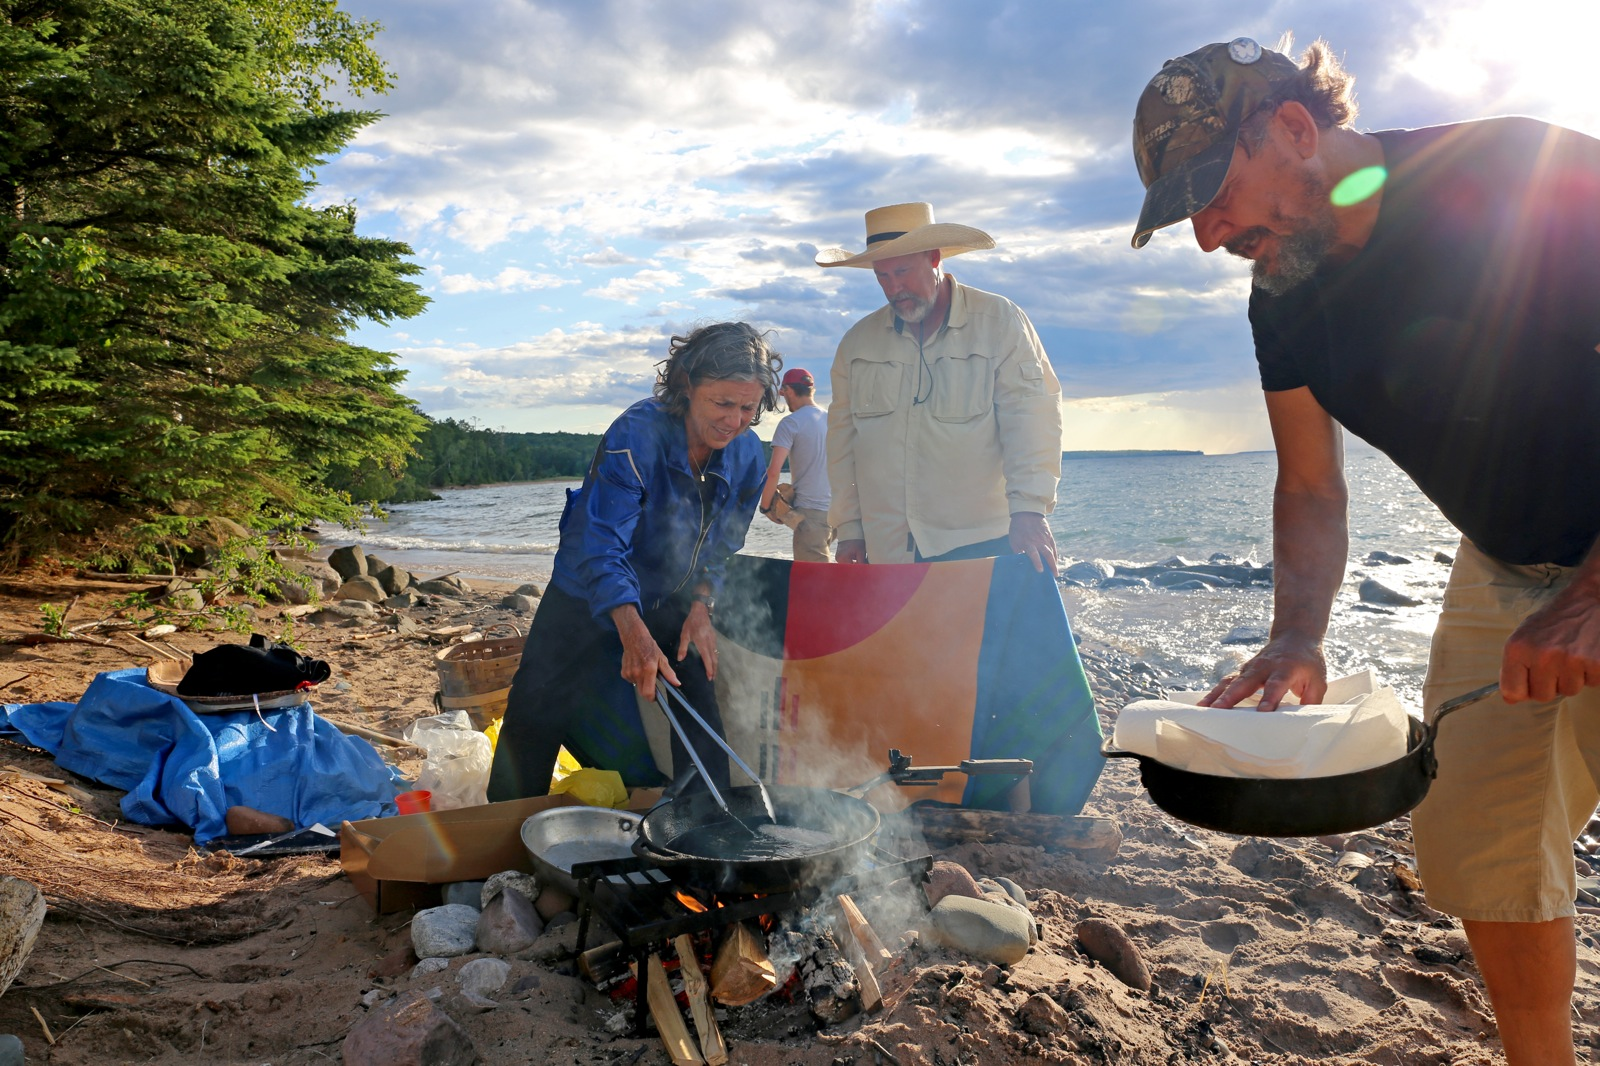 Man holding frying pan and woman cooking over a fire on the beach.